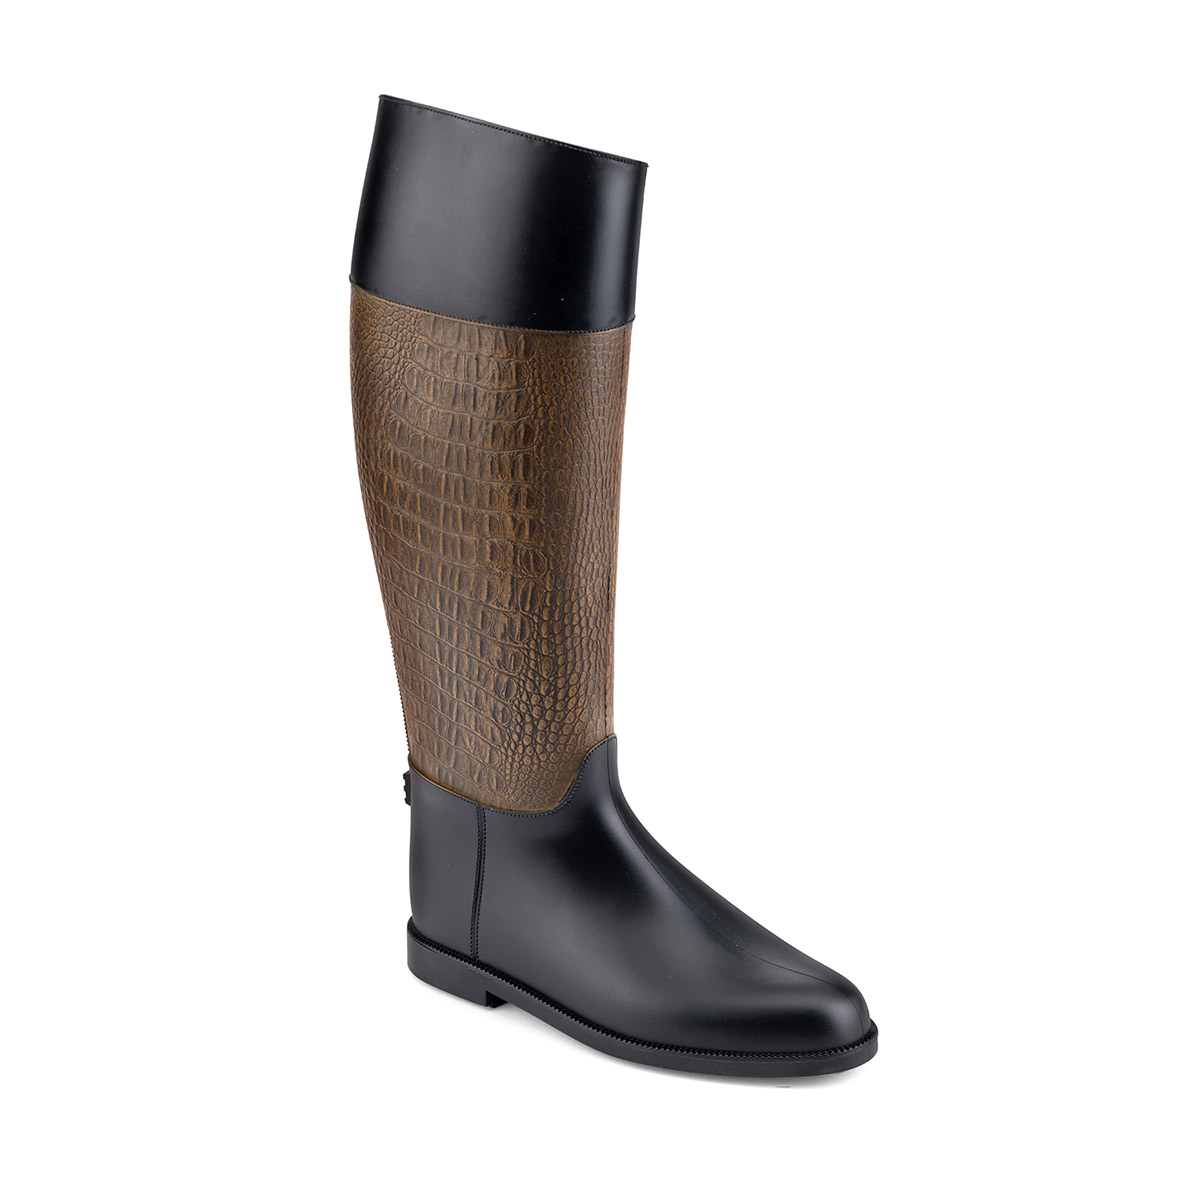 Pvc Riding Boot with a crocodile printing